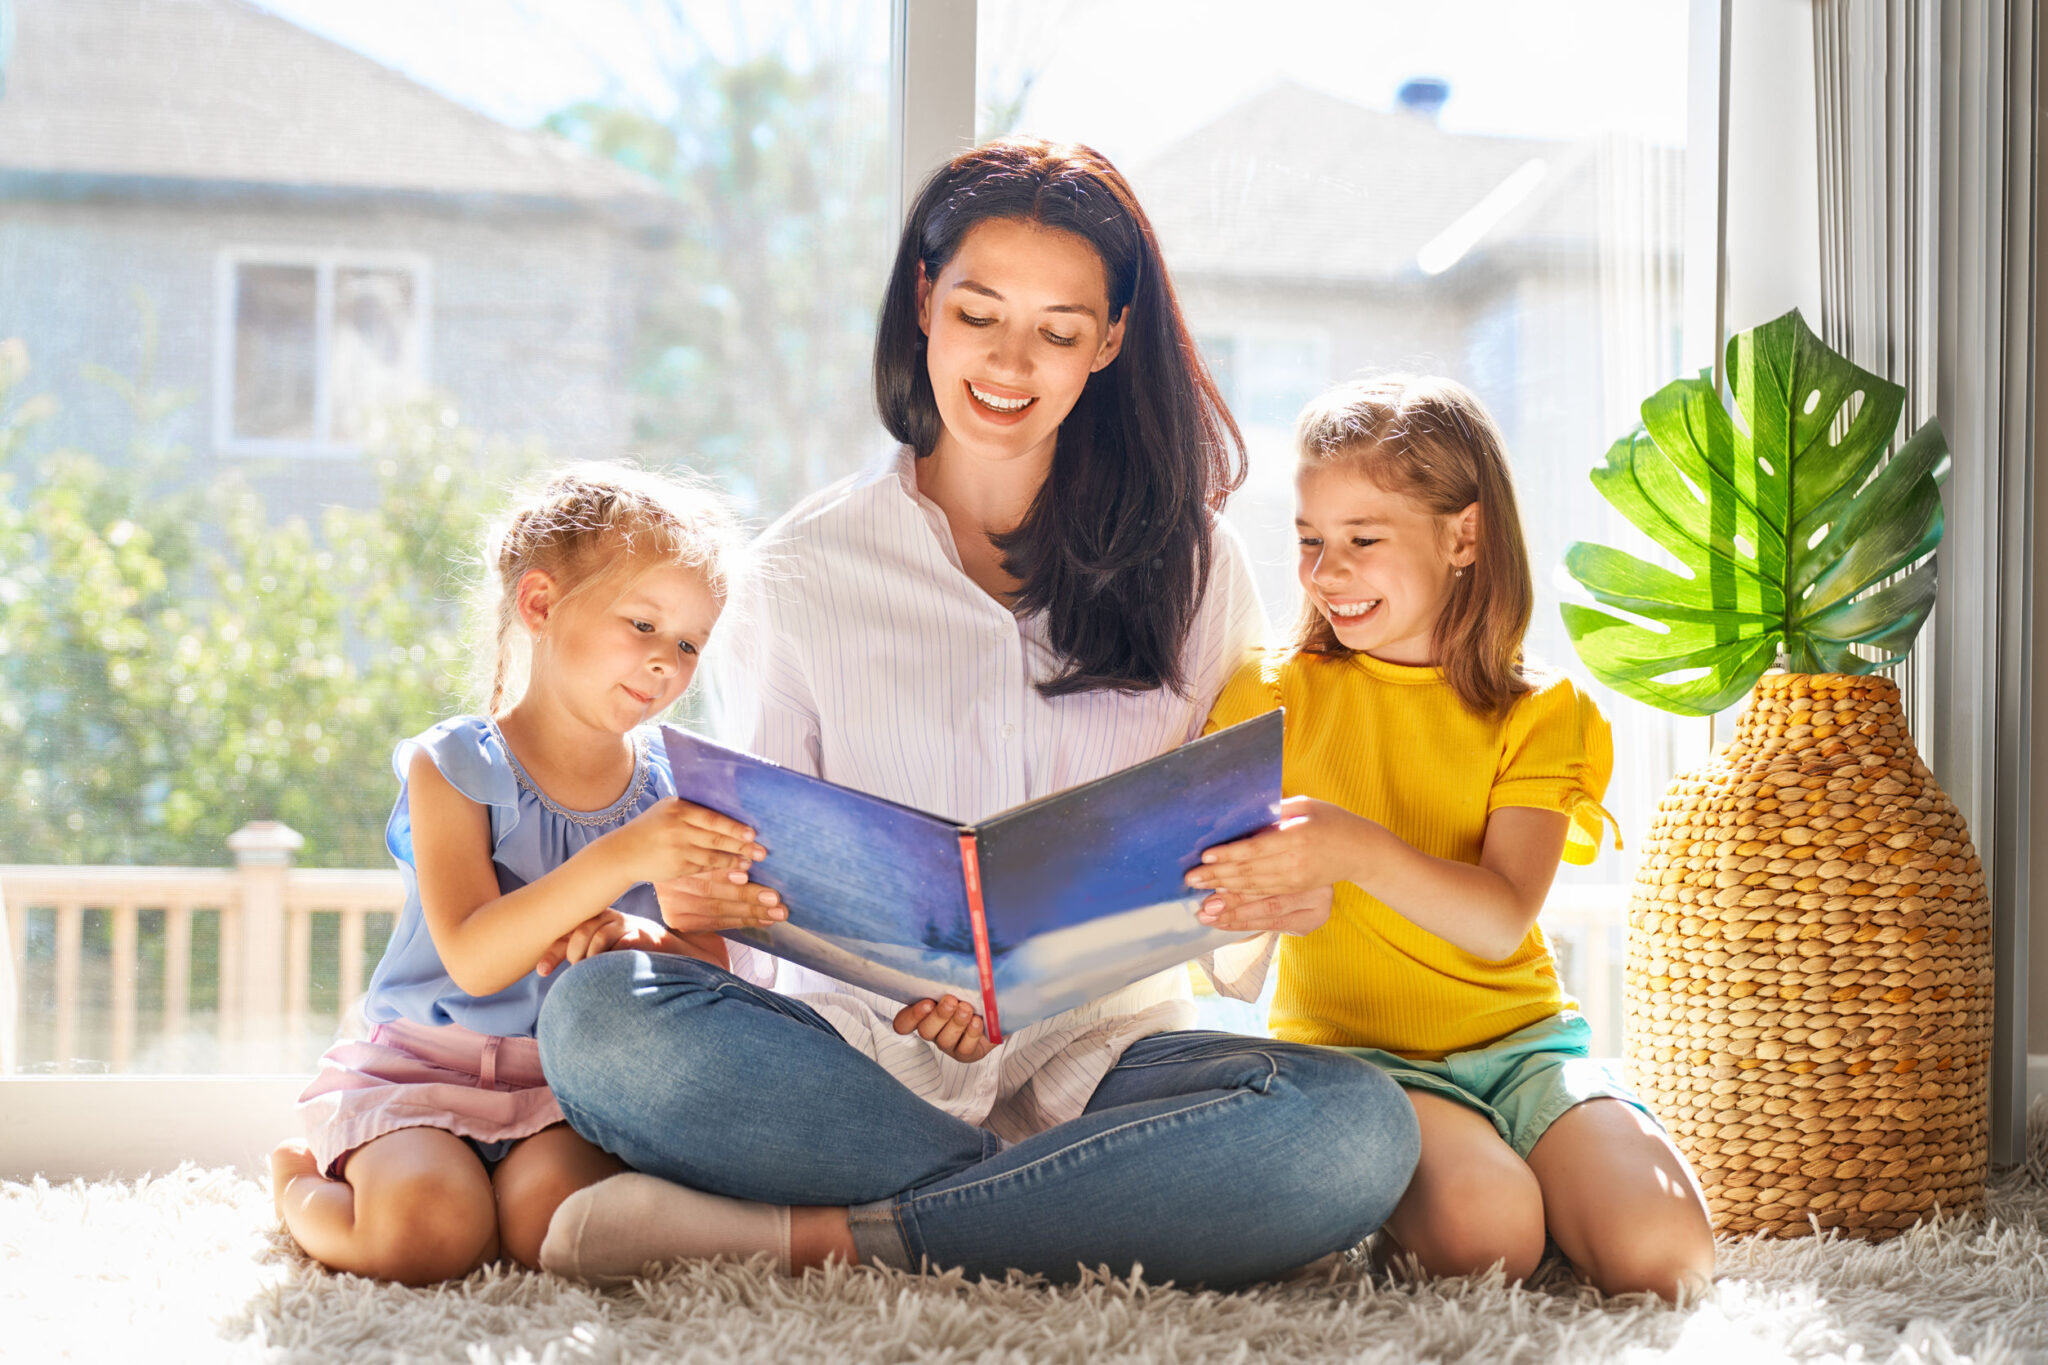 Bilingual Nanny reads book to 2 happy young children